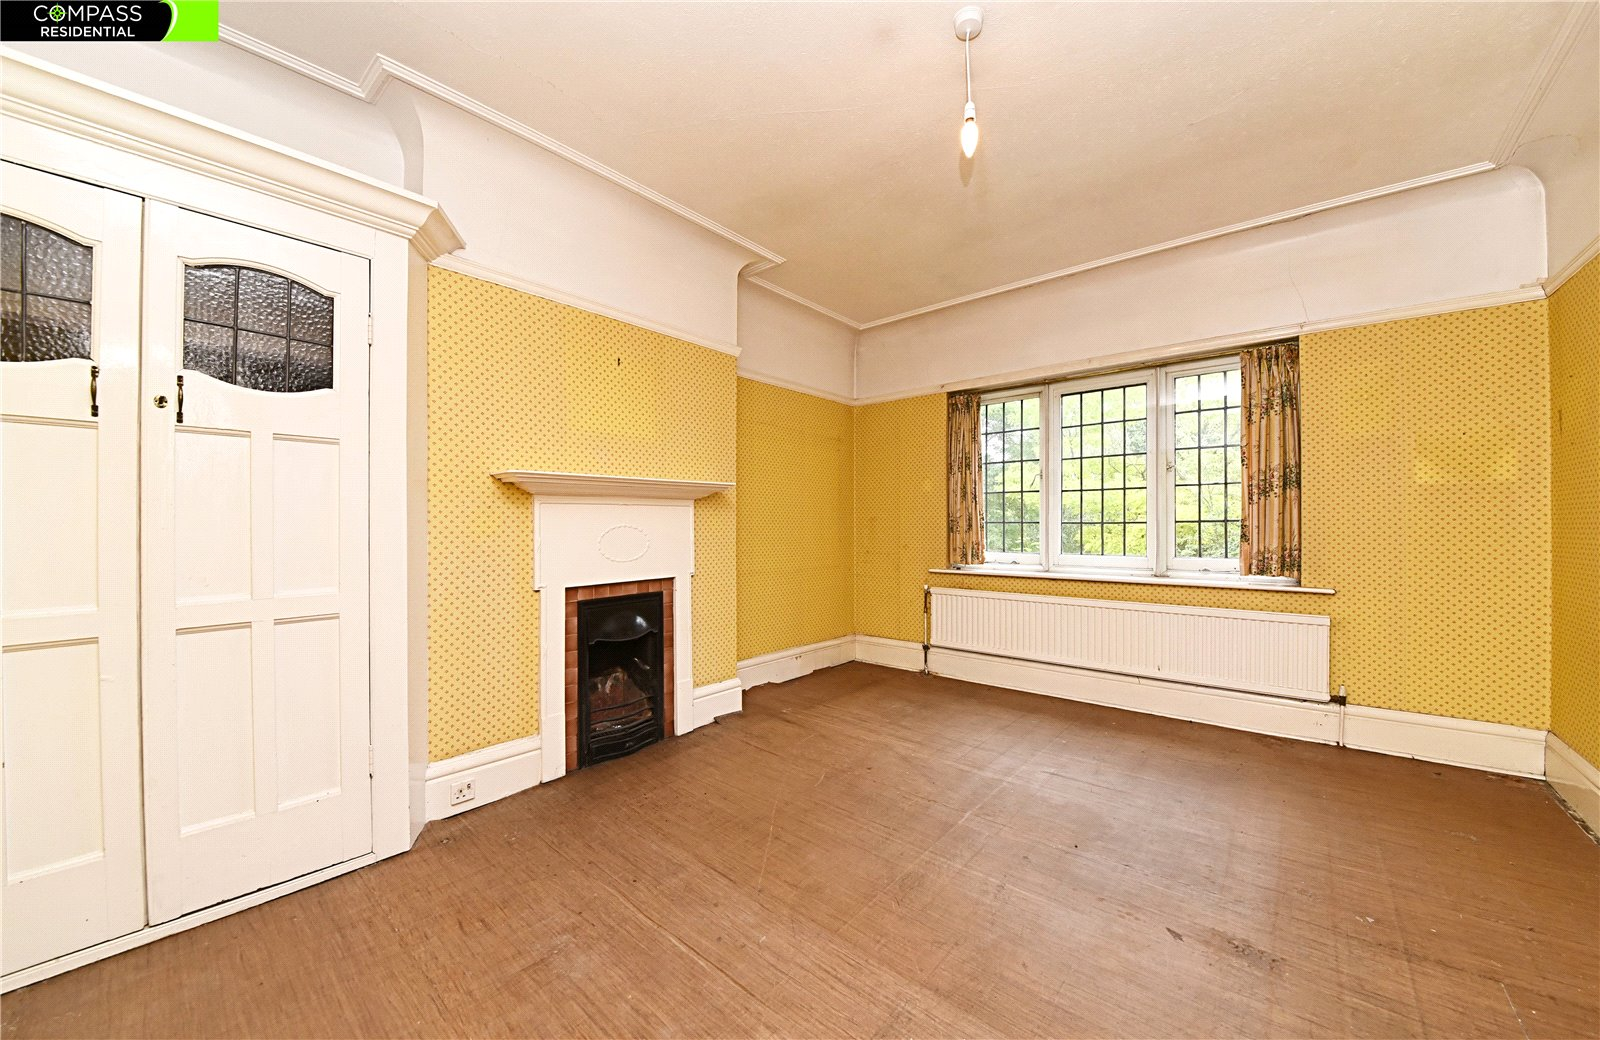 6 bed house for sale in Whetstone, N20 0NN 10